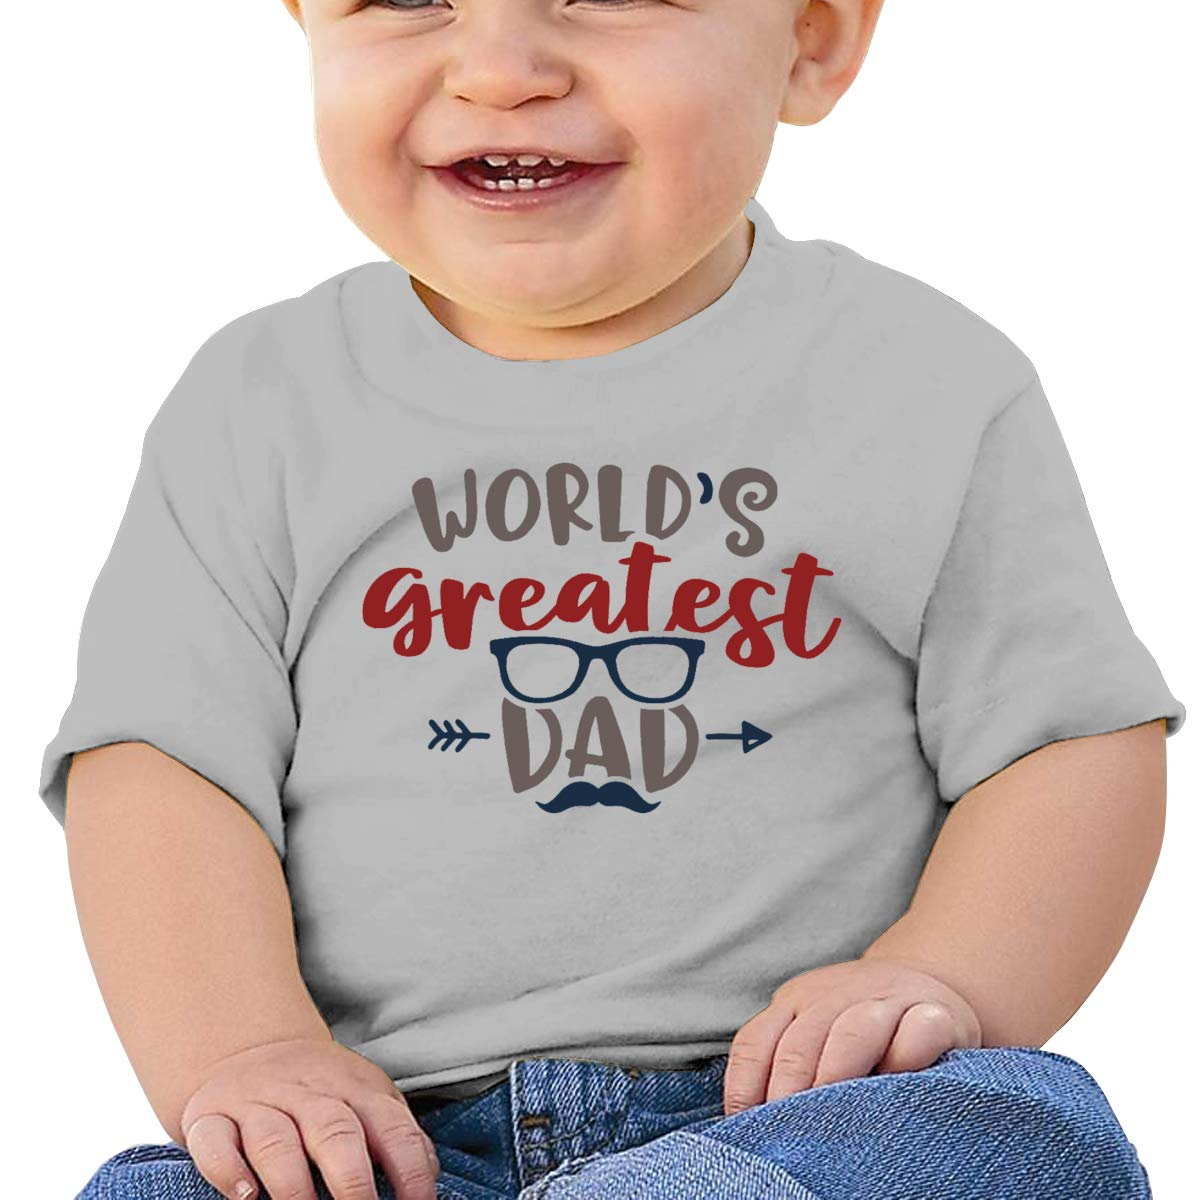 JVNSS Worlds Greatest Dad Baby T-Shirt Kids Cotton T Shirts Fashion Graphic Tees for 6M-2T Baby